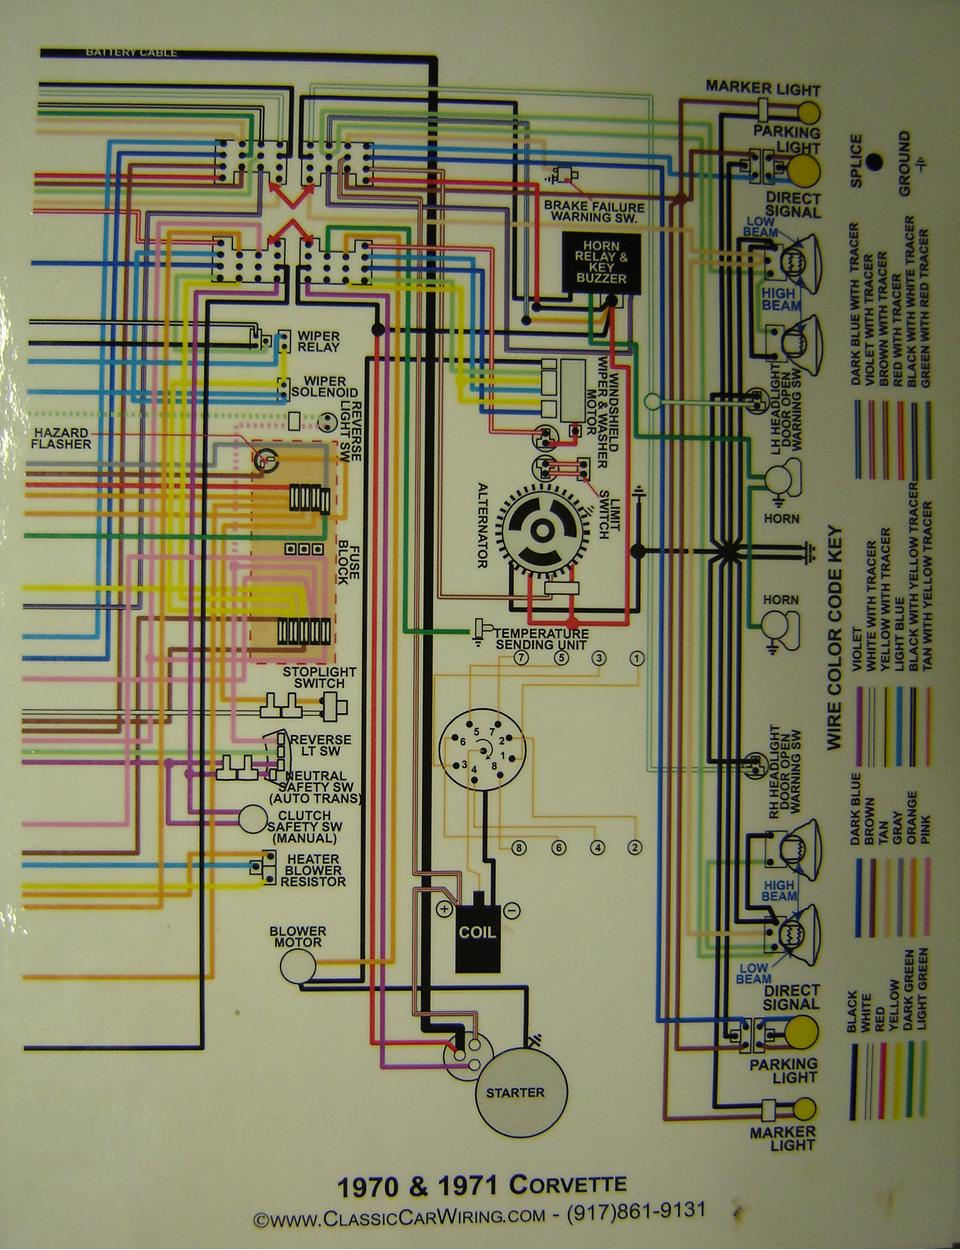 1970 71 corvette color wiring diagram B chevy diagrams 1984 El Camino Wiring-Diagram at fashall.co